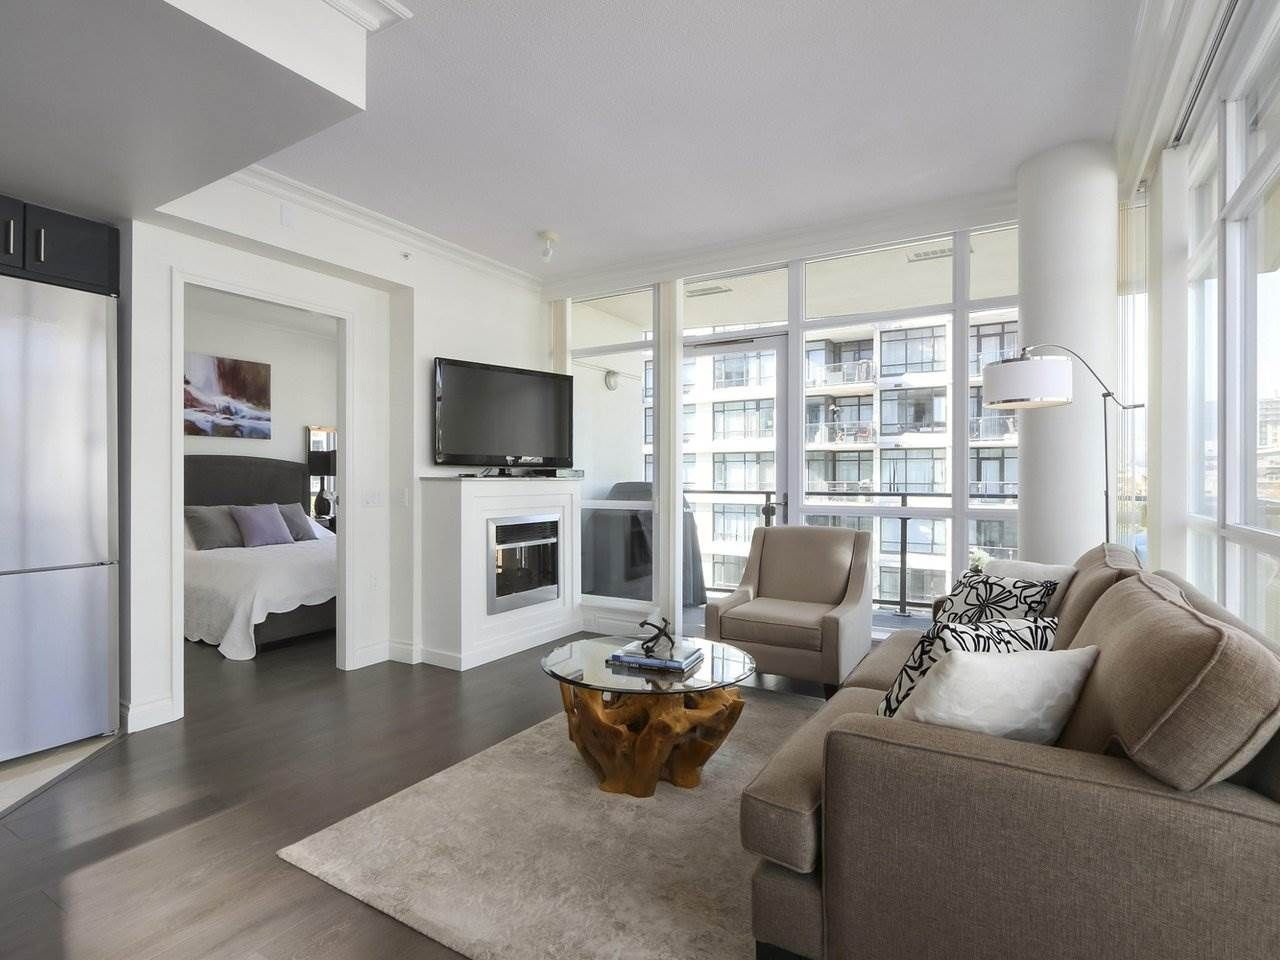 """Photo 3: Photos: 608 172 VICTORY SHIP Way in North Vancouver: Lower Lonsdale Condo for sale in """"Atrium at the Pier"""" : MLS®# R2454404"""